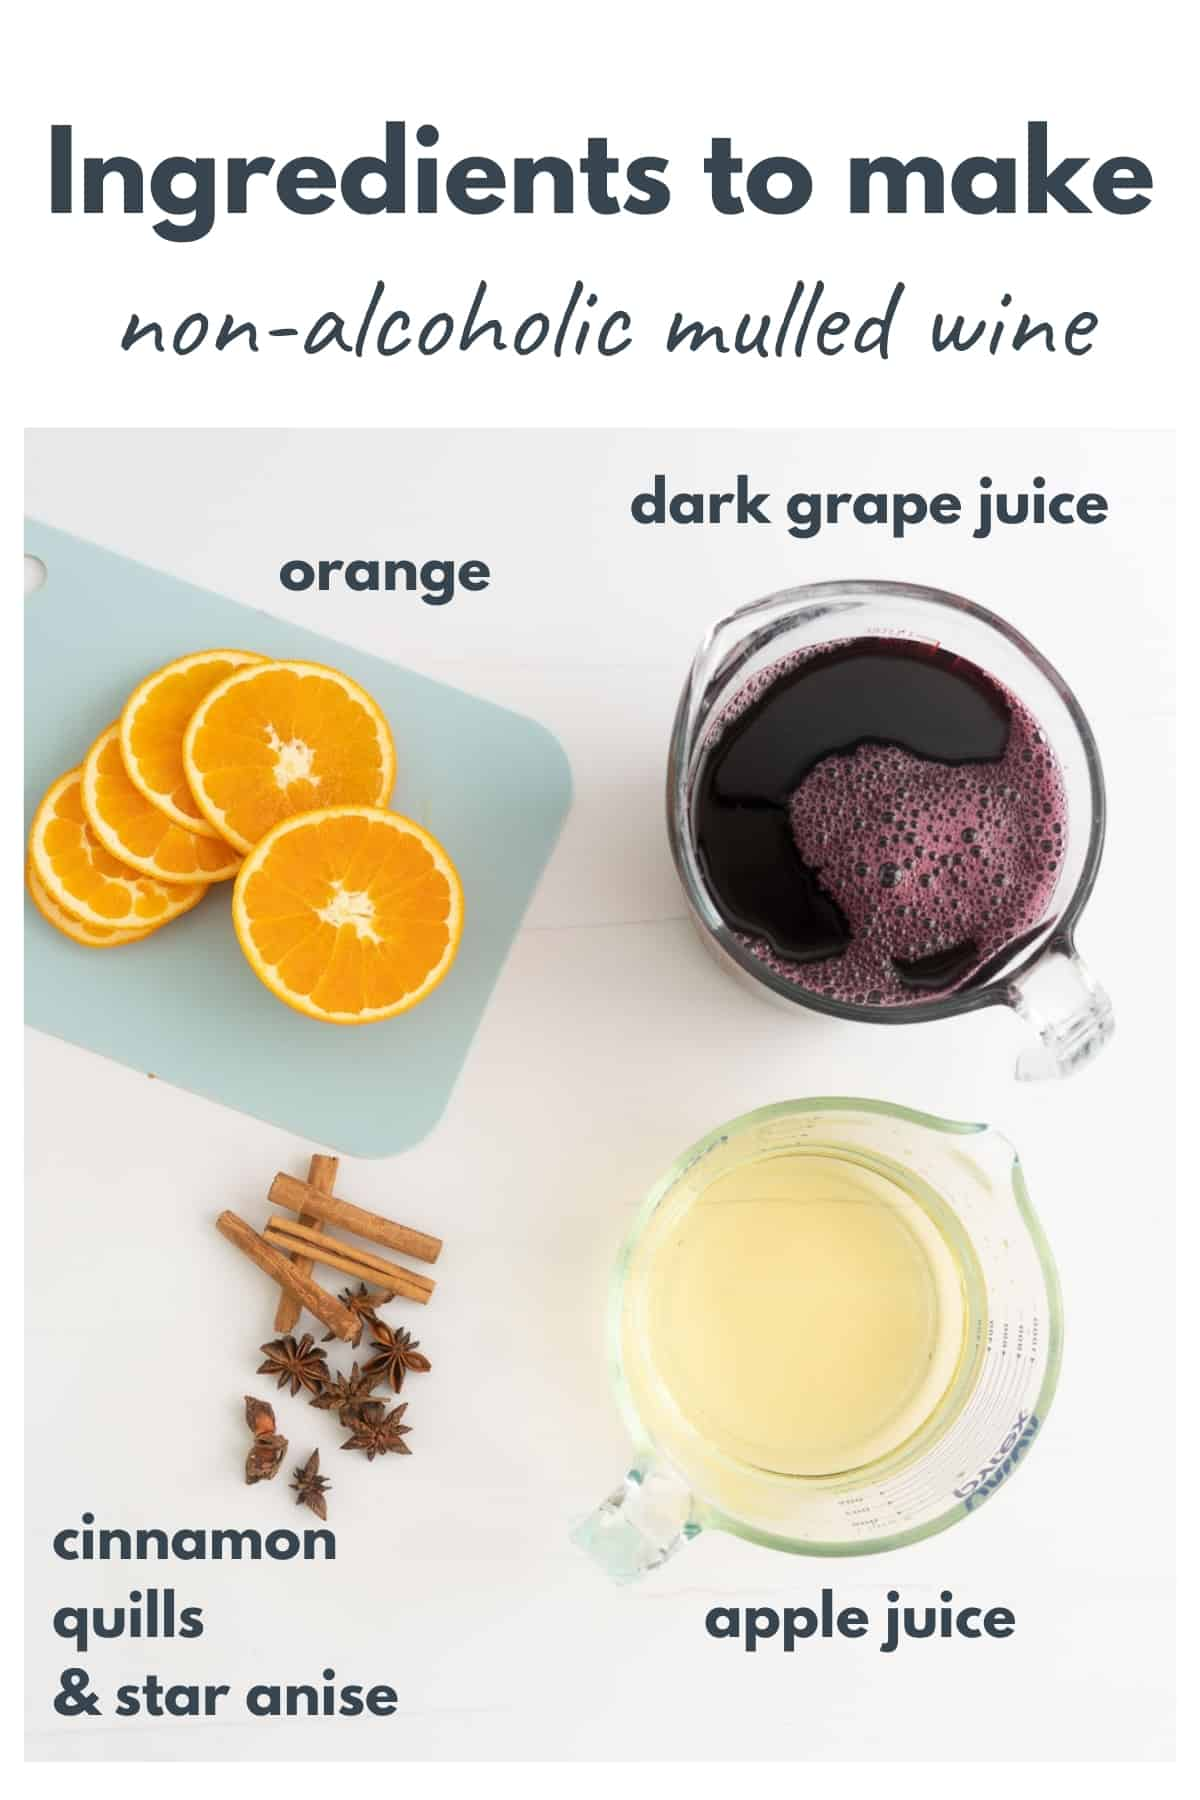 The ingredients to make non-alcoholic mulled wine laid out on a bench top with text overlay.